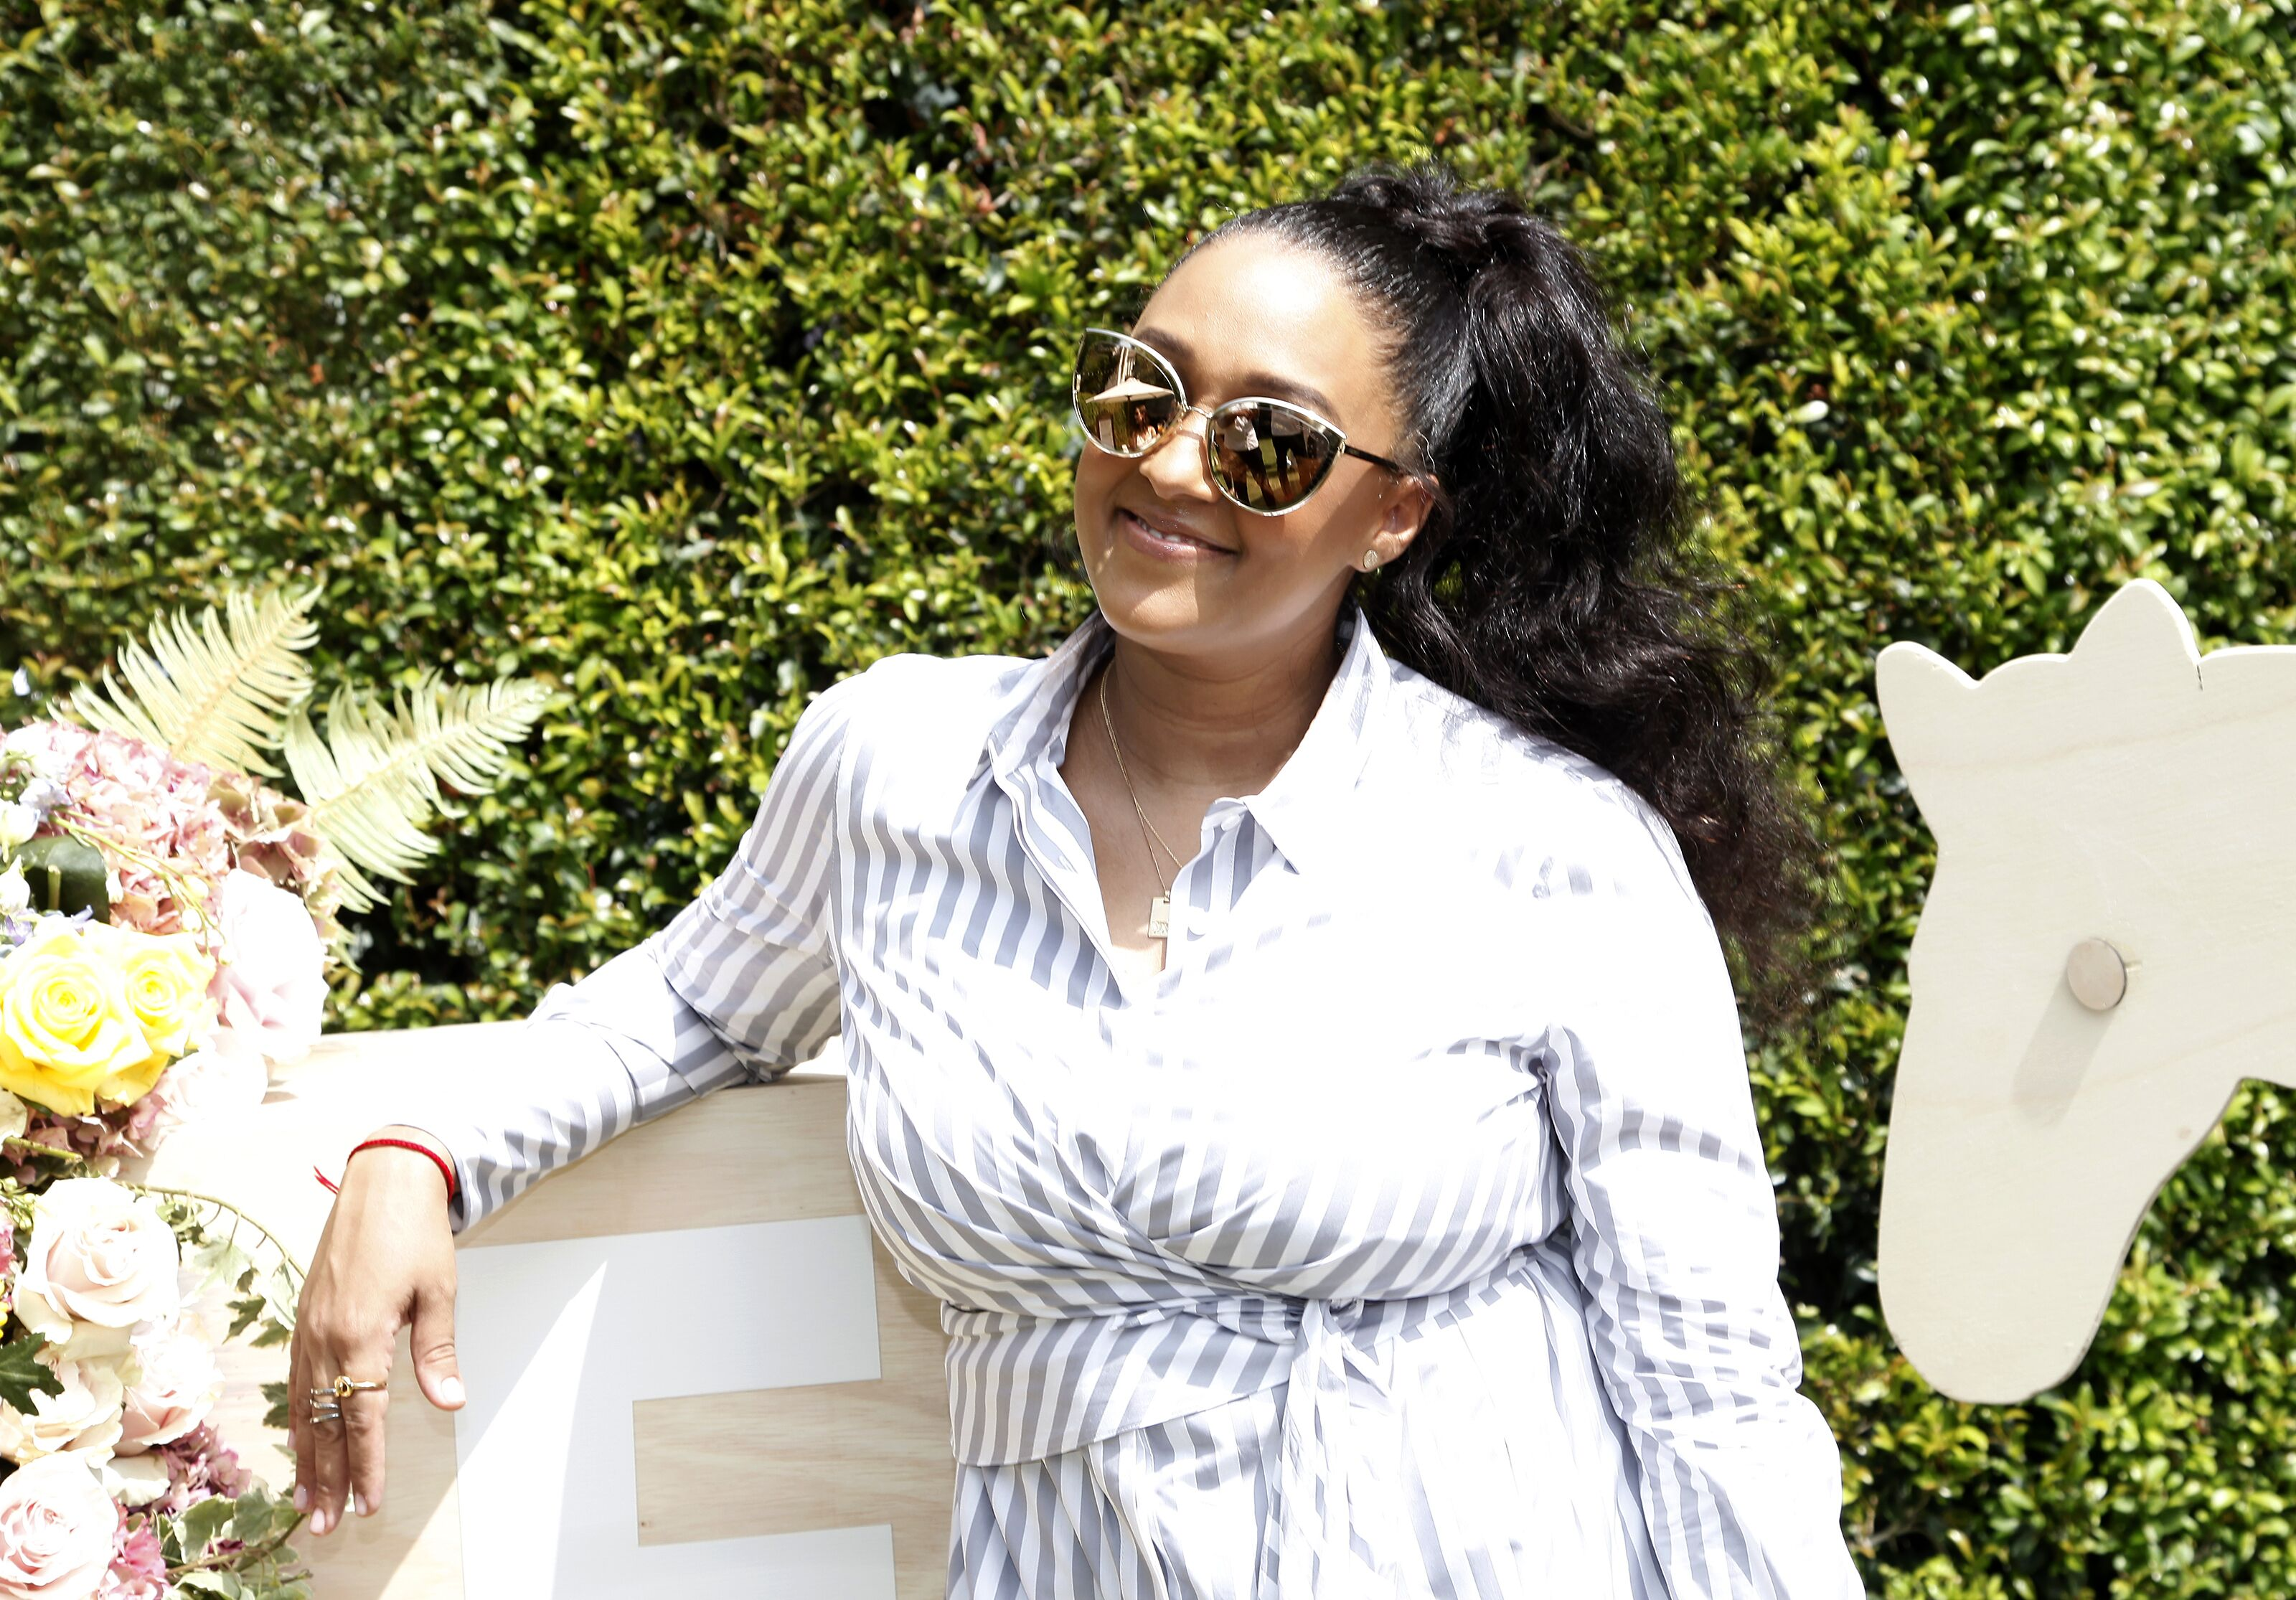 Tia Mowry at a Back-To-School block party on Aug. 25, 2018 in California | Photo: Getty Images